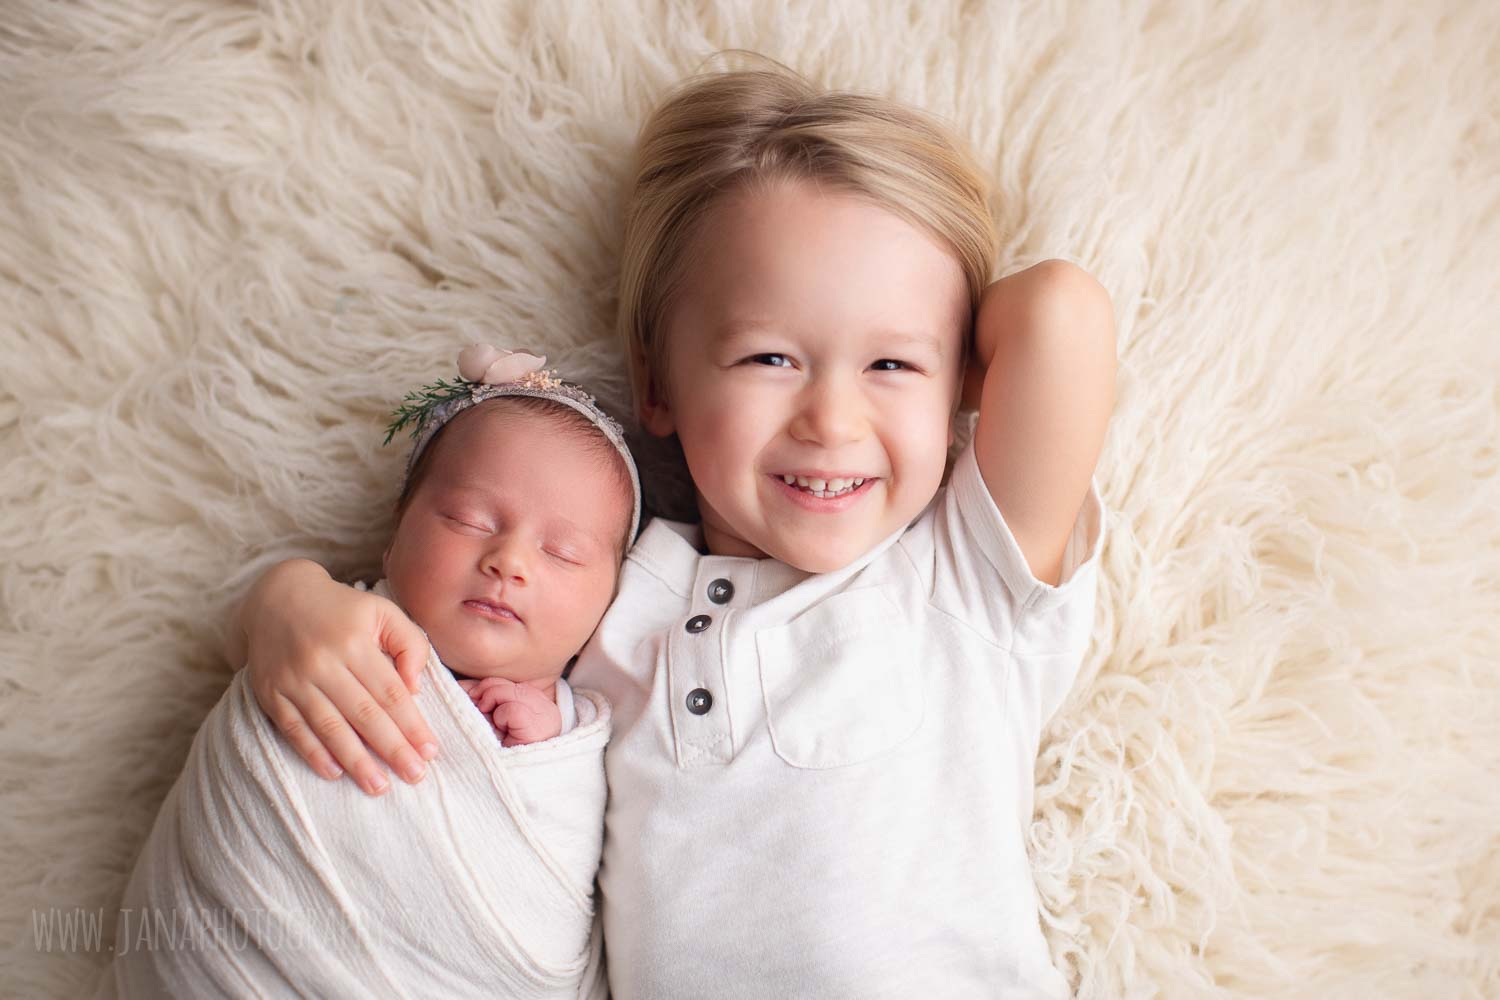 newborn photography with siblings - sister and brother - white setup